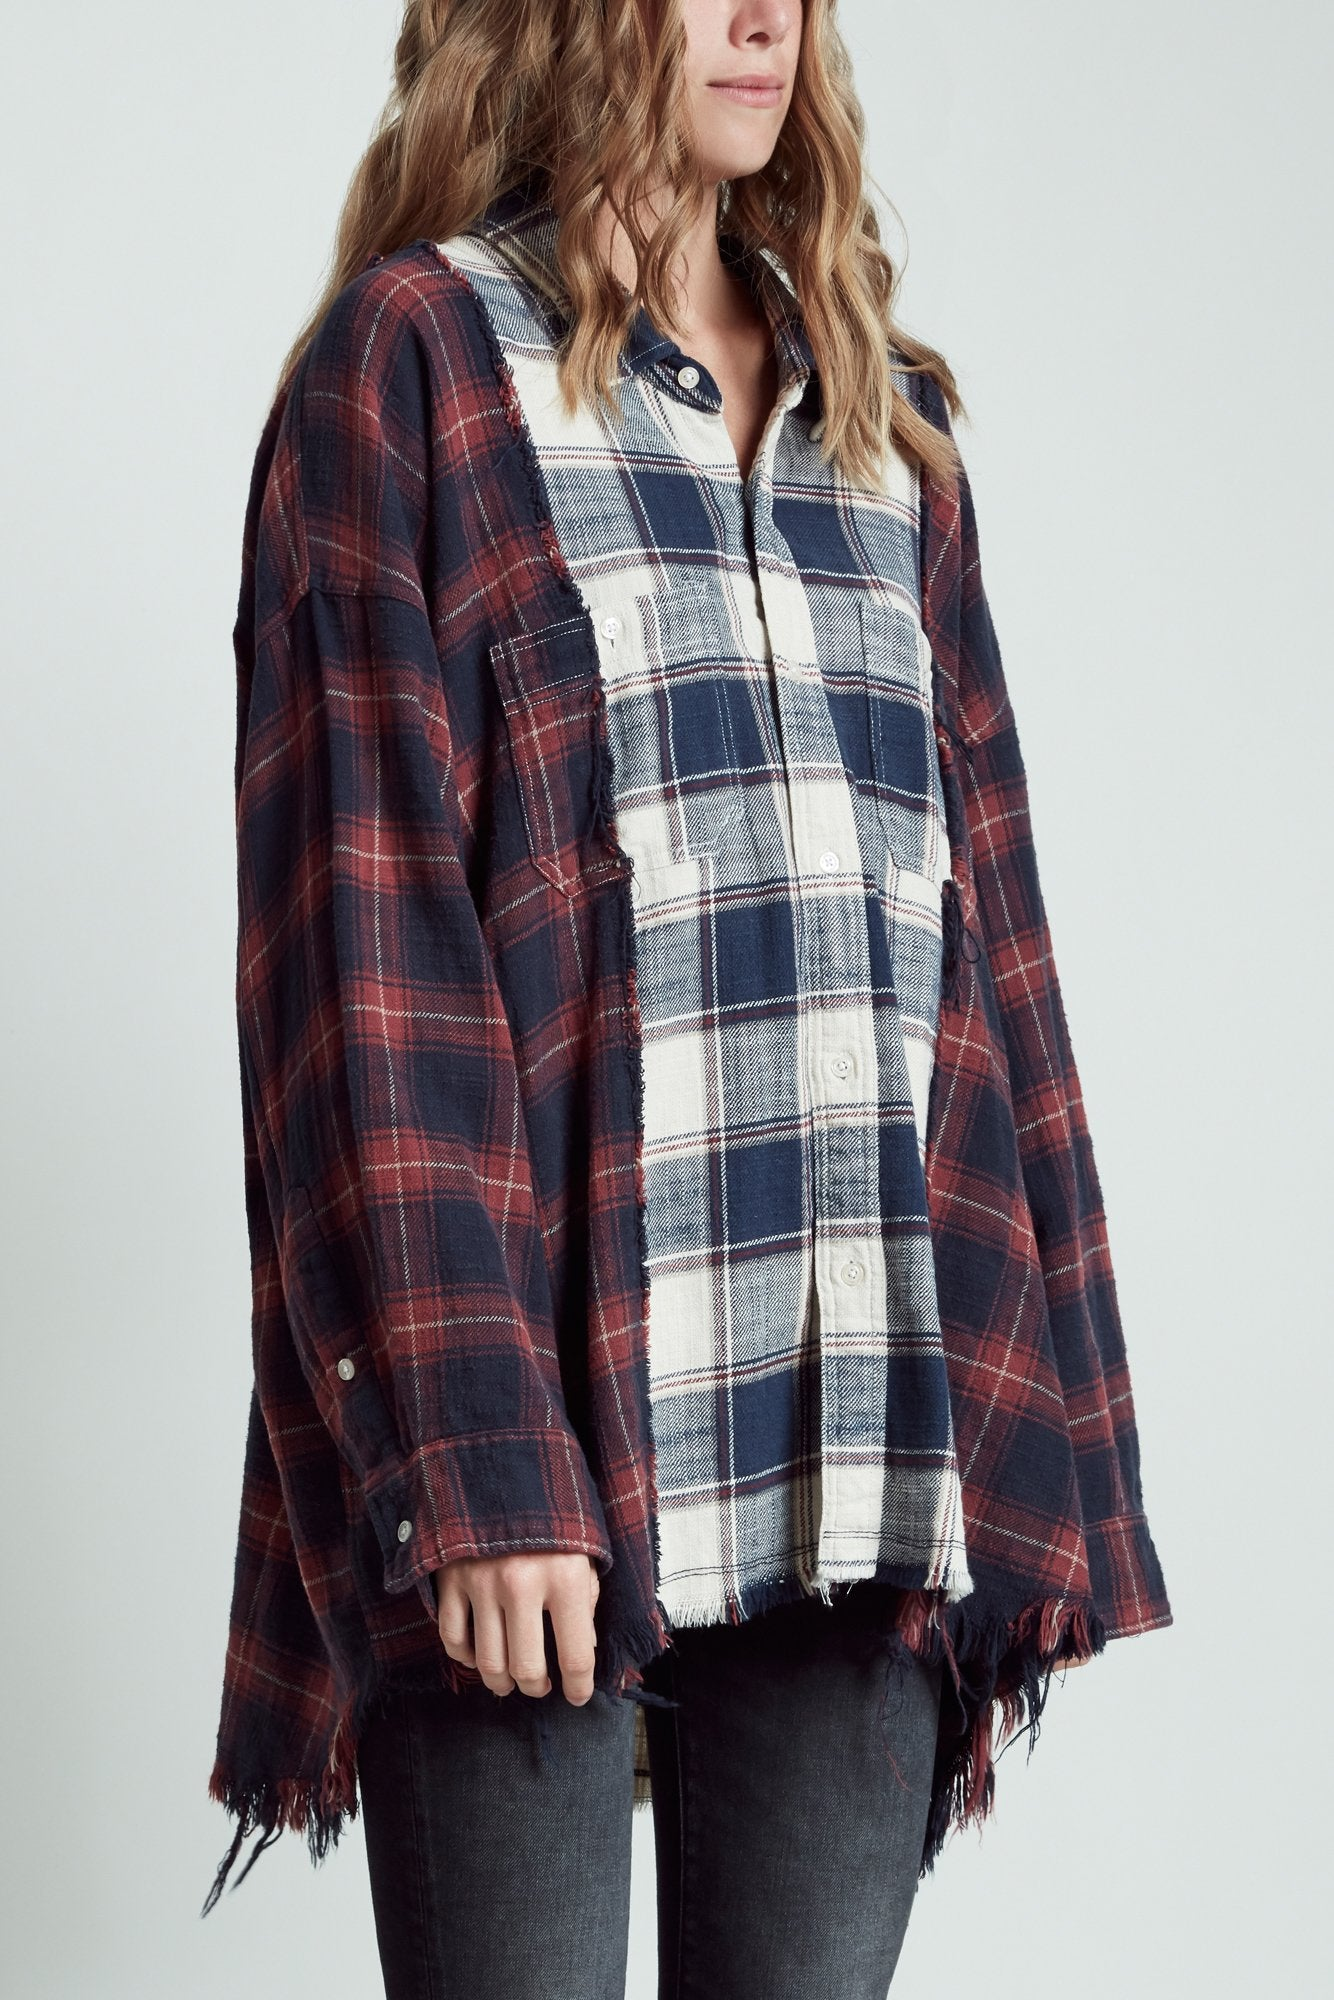 Drop Neck Combo Workshirt - Ecru with Maroon Plaid